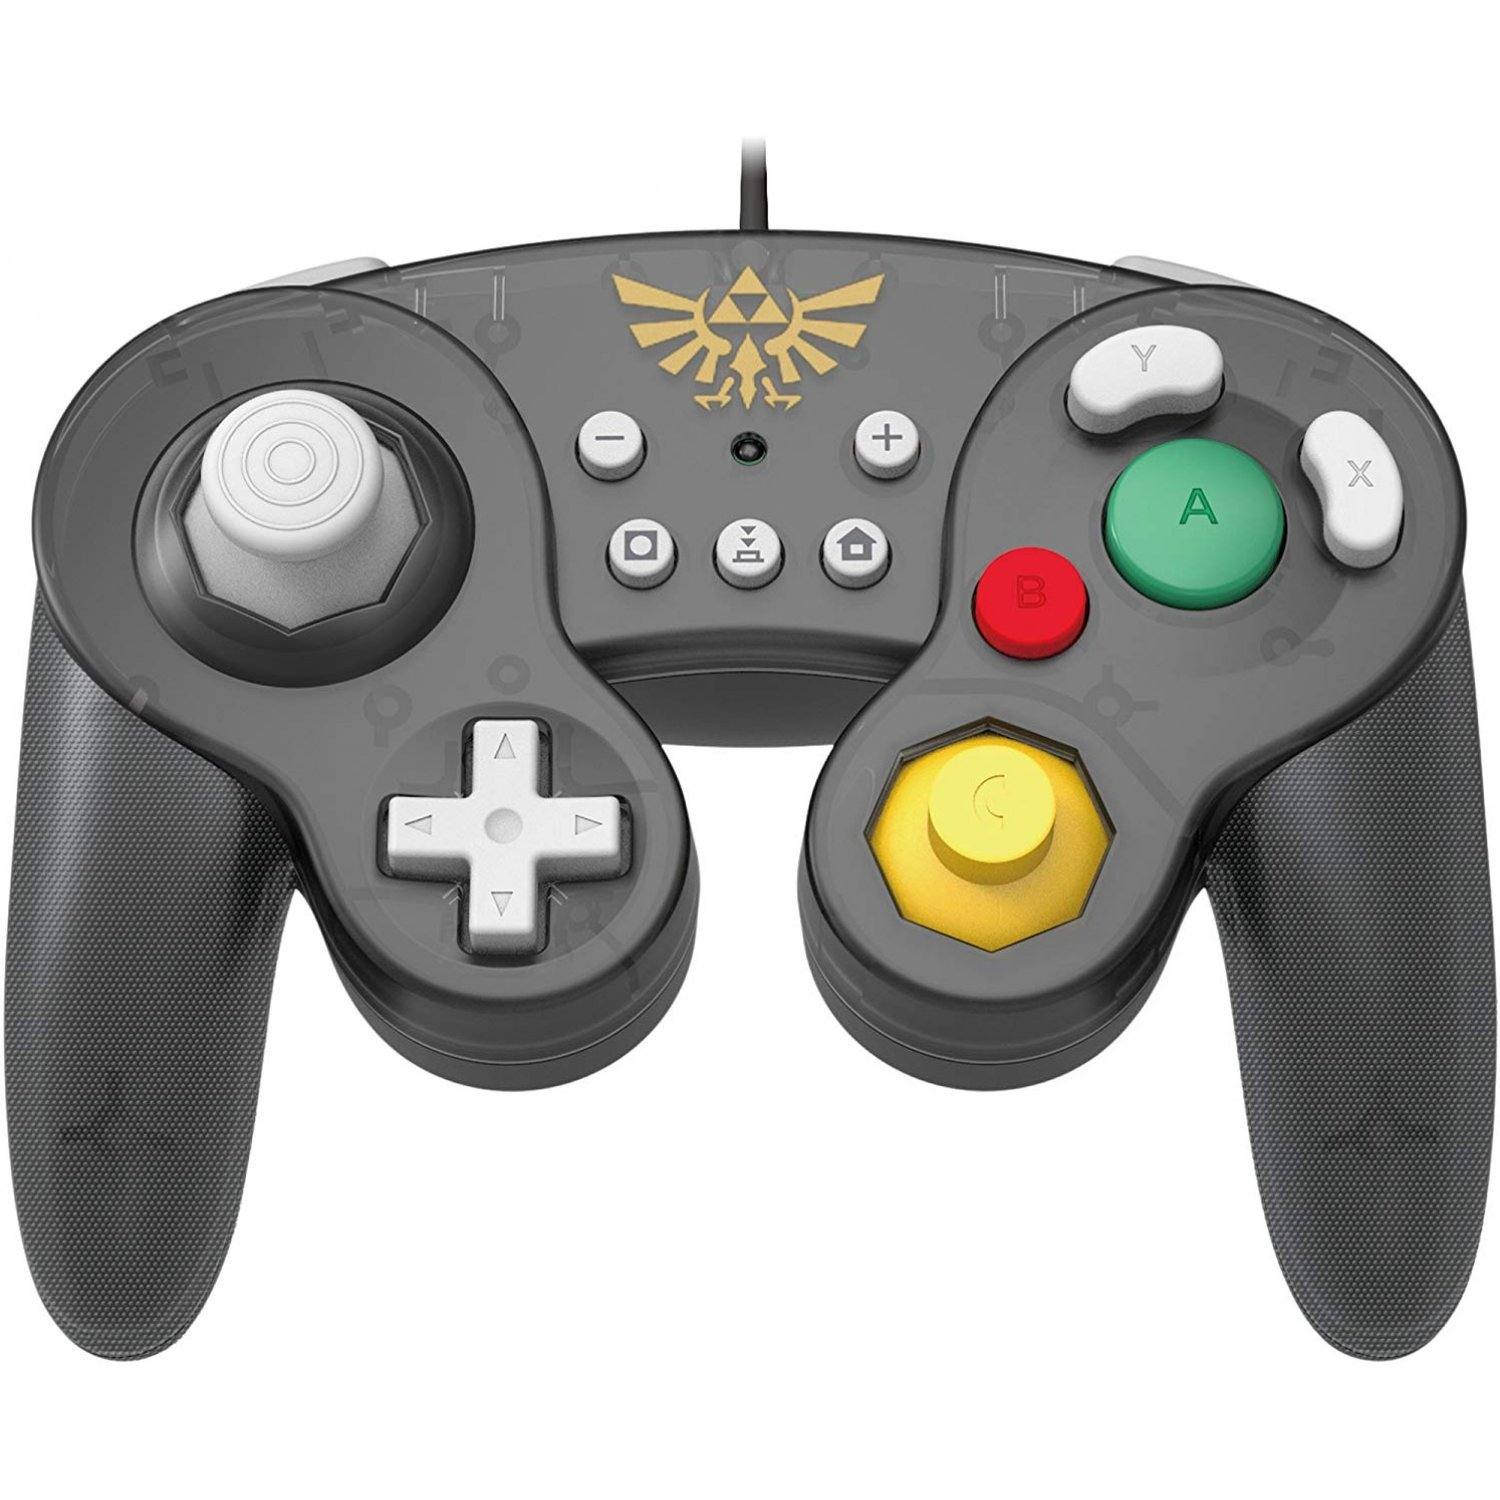 The Legend Of Zelda Breath Of The Wild Classic Controller For Nintendo Switch